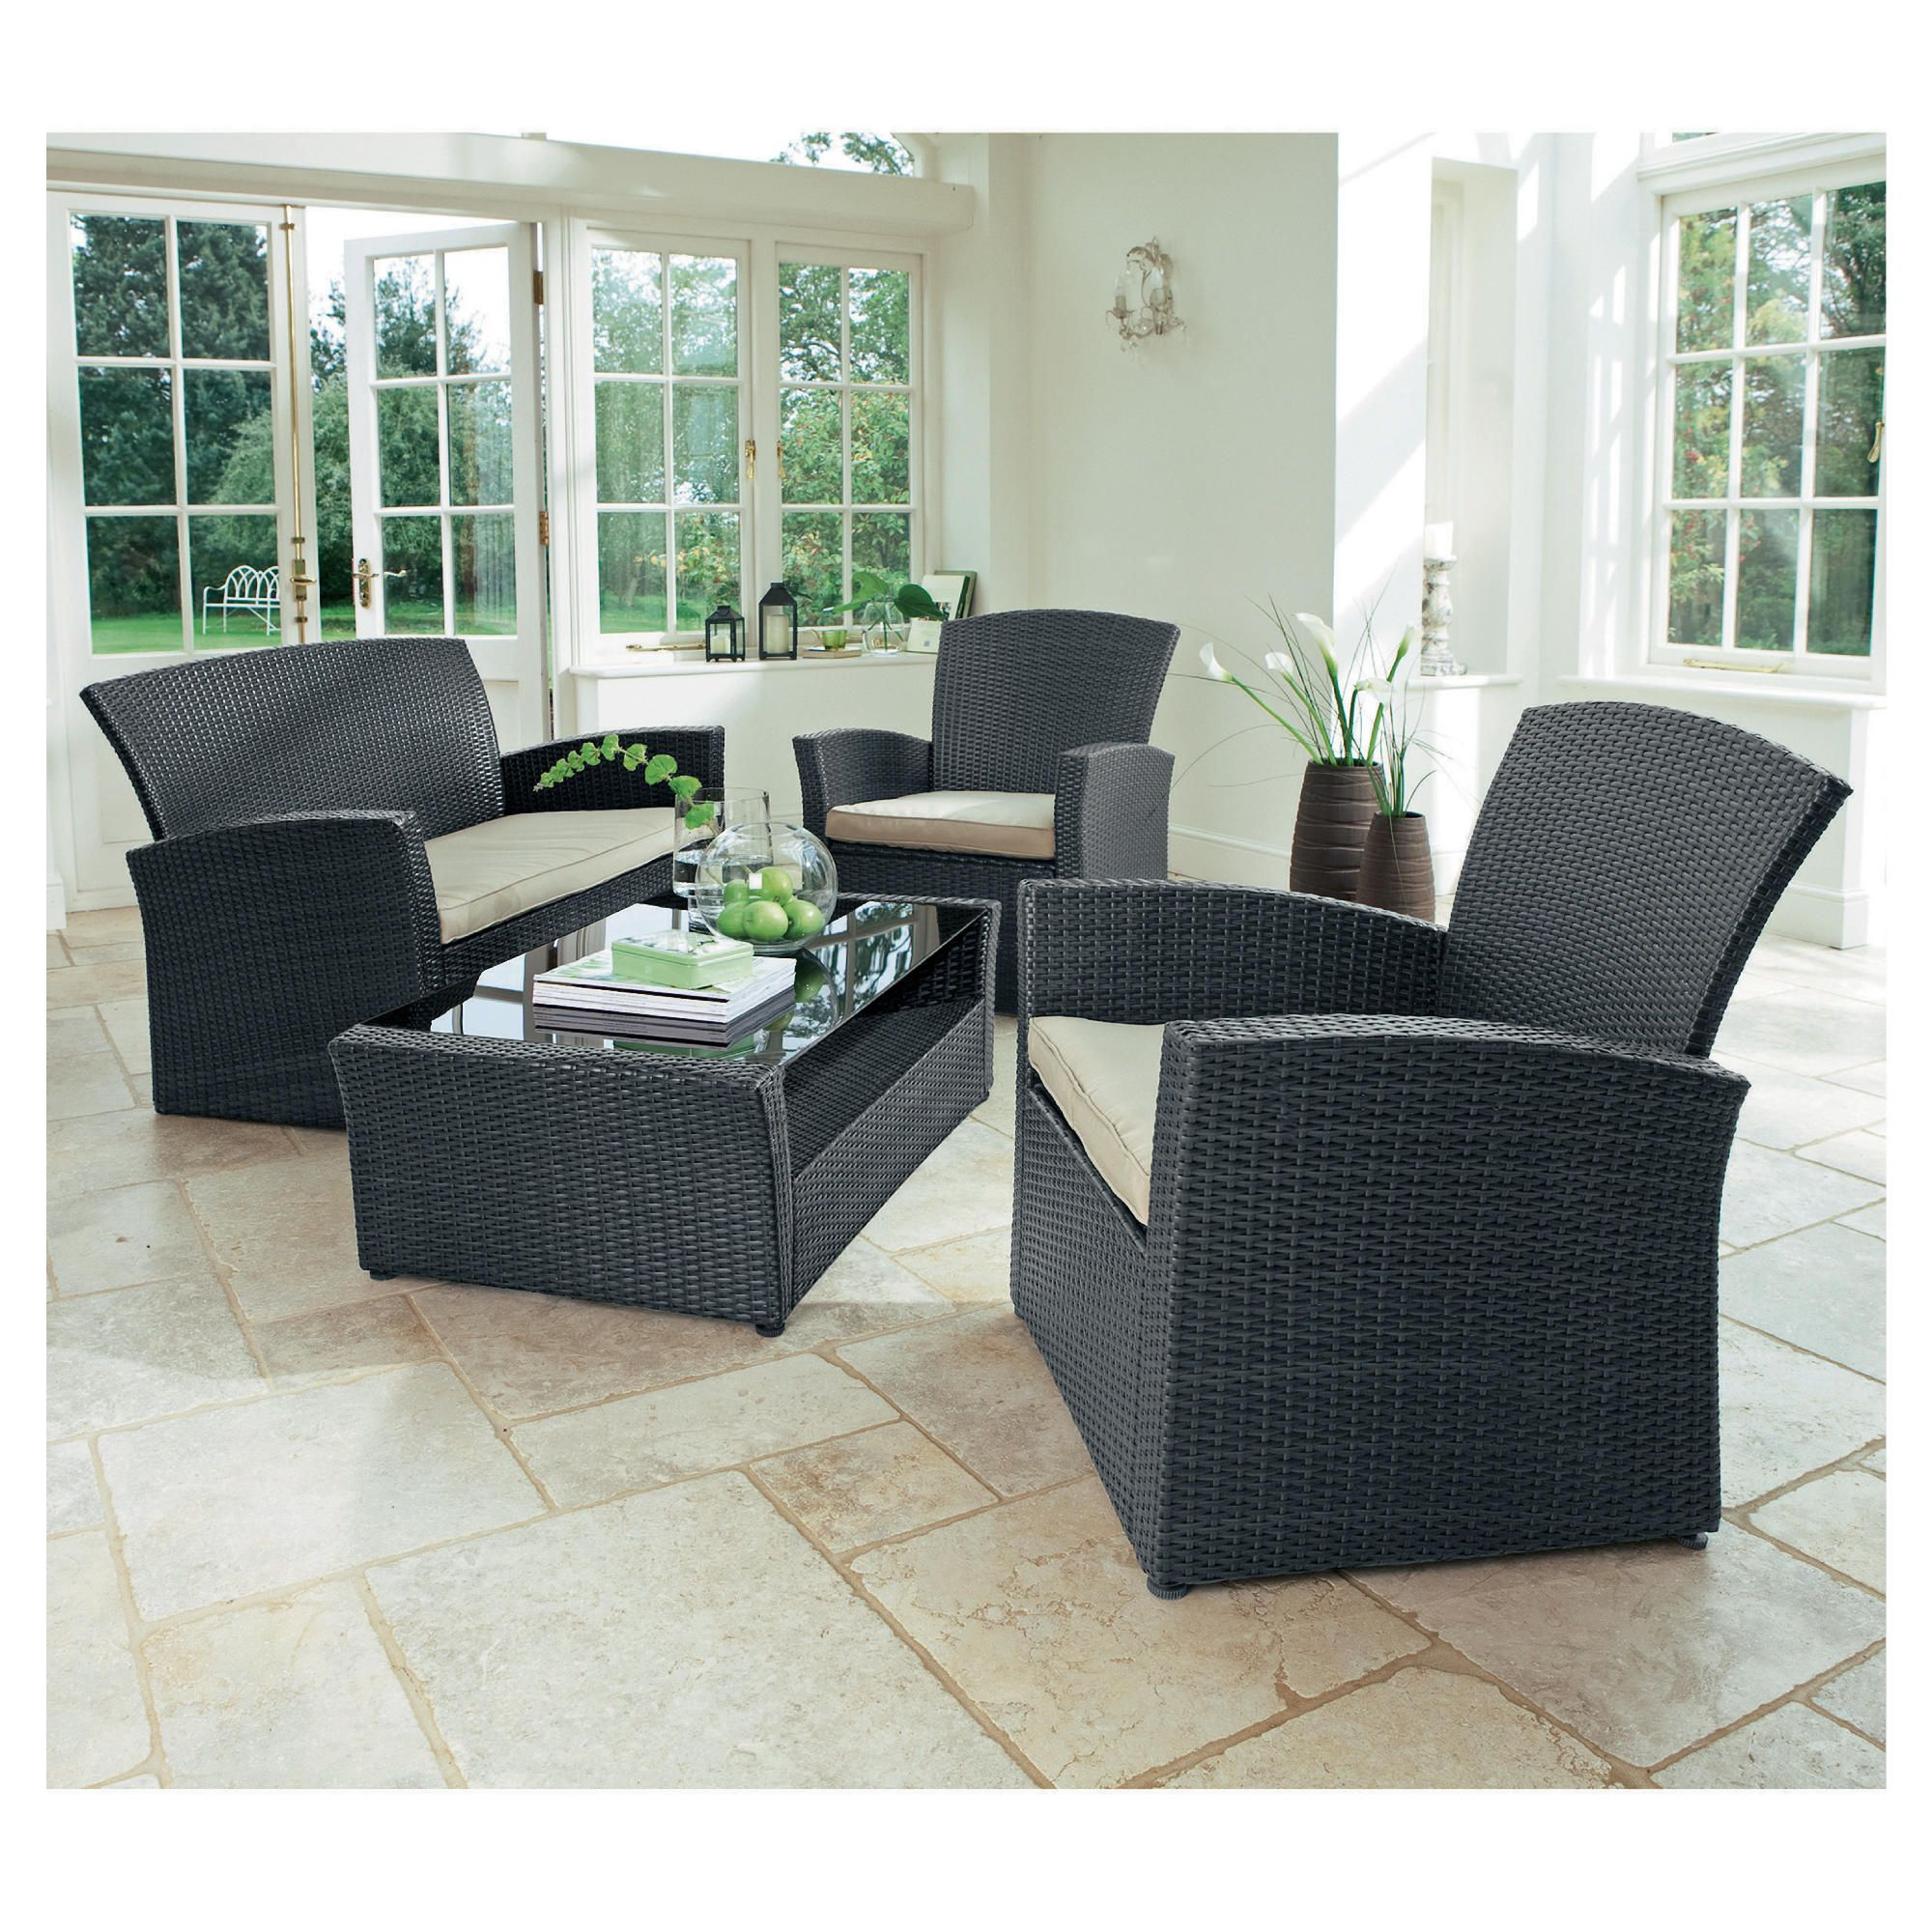 Miami Lounging Set, Grey at Tesco Direct